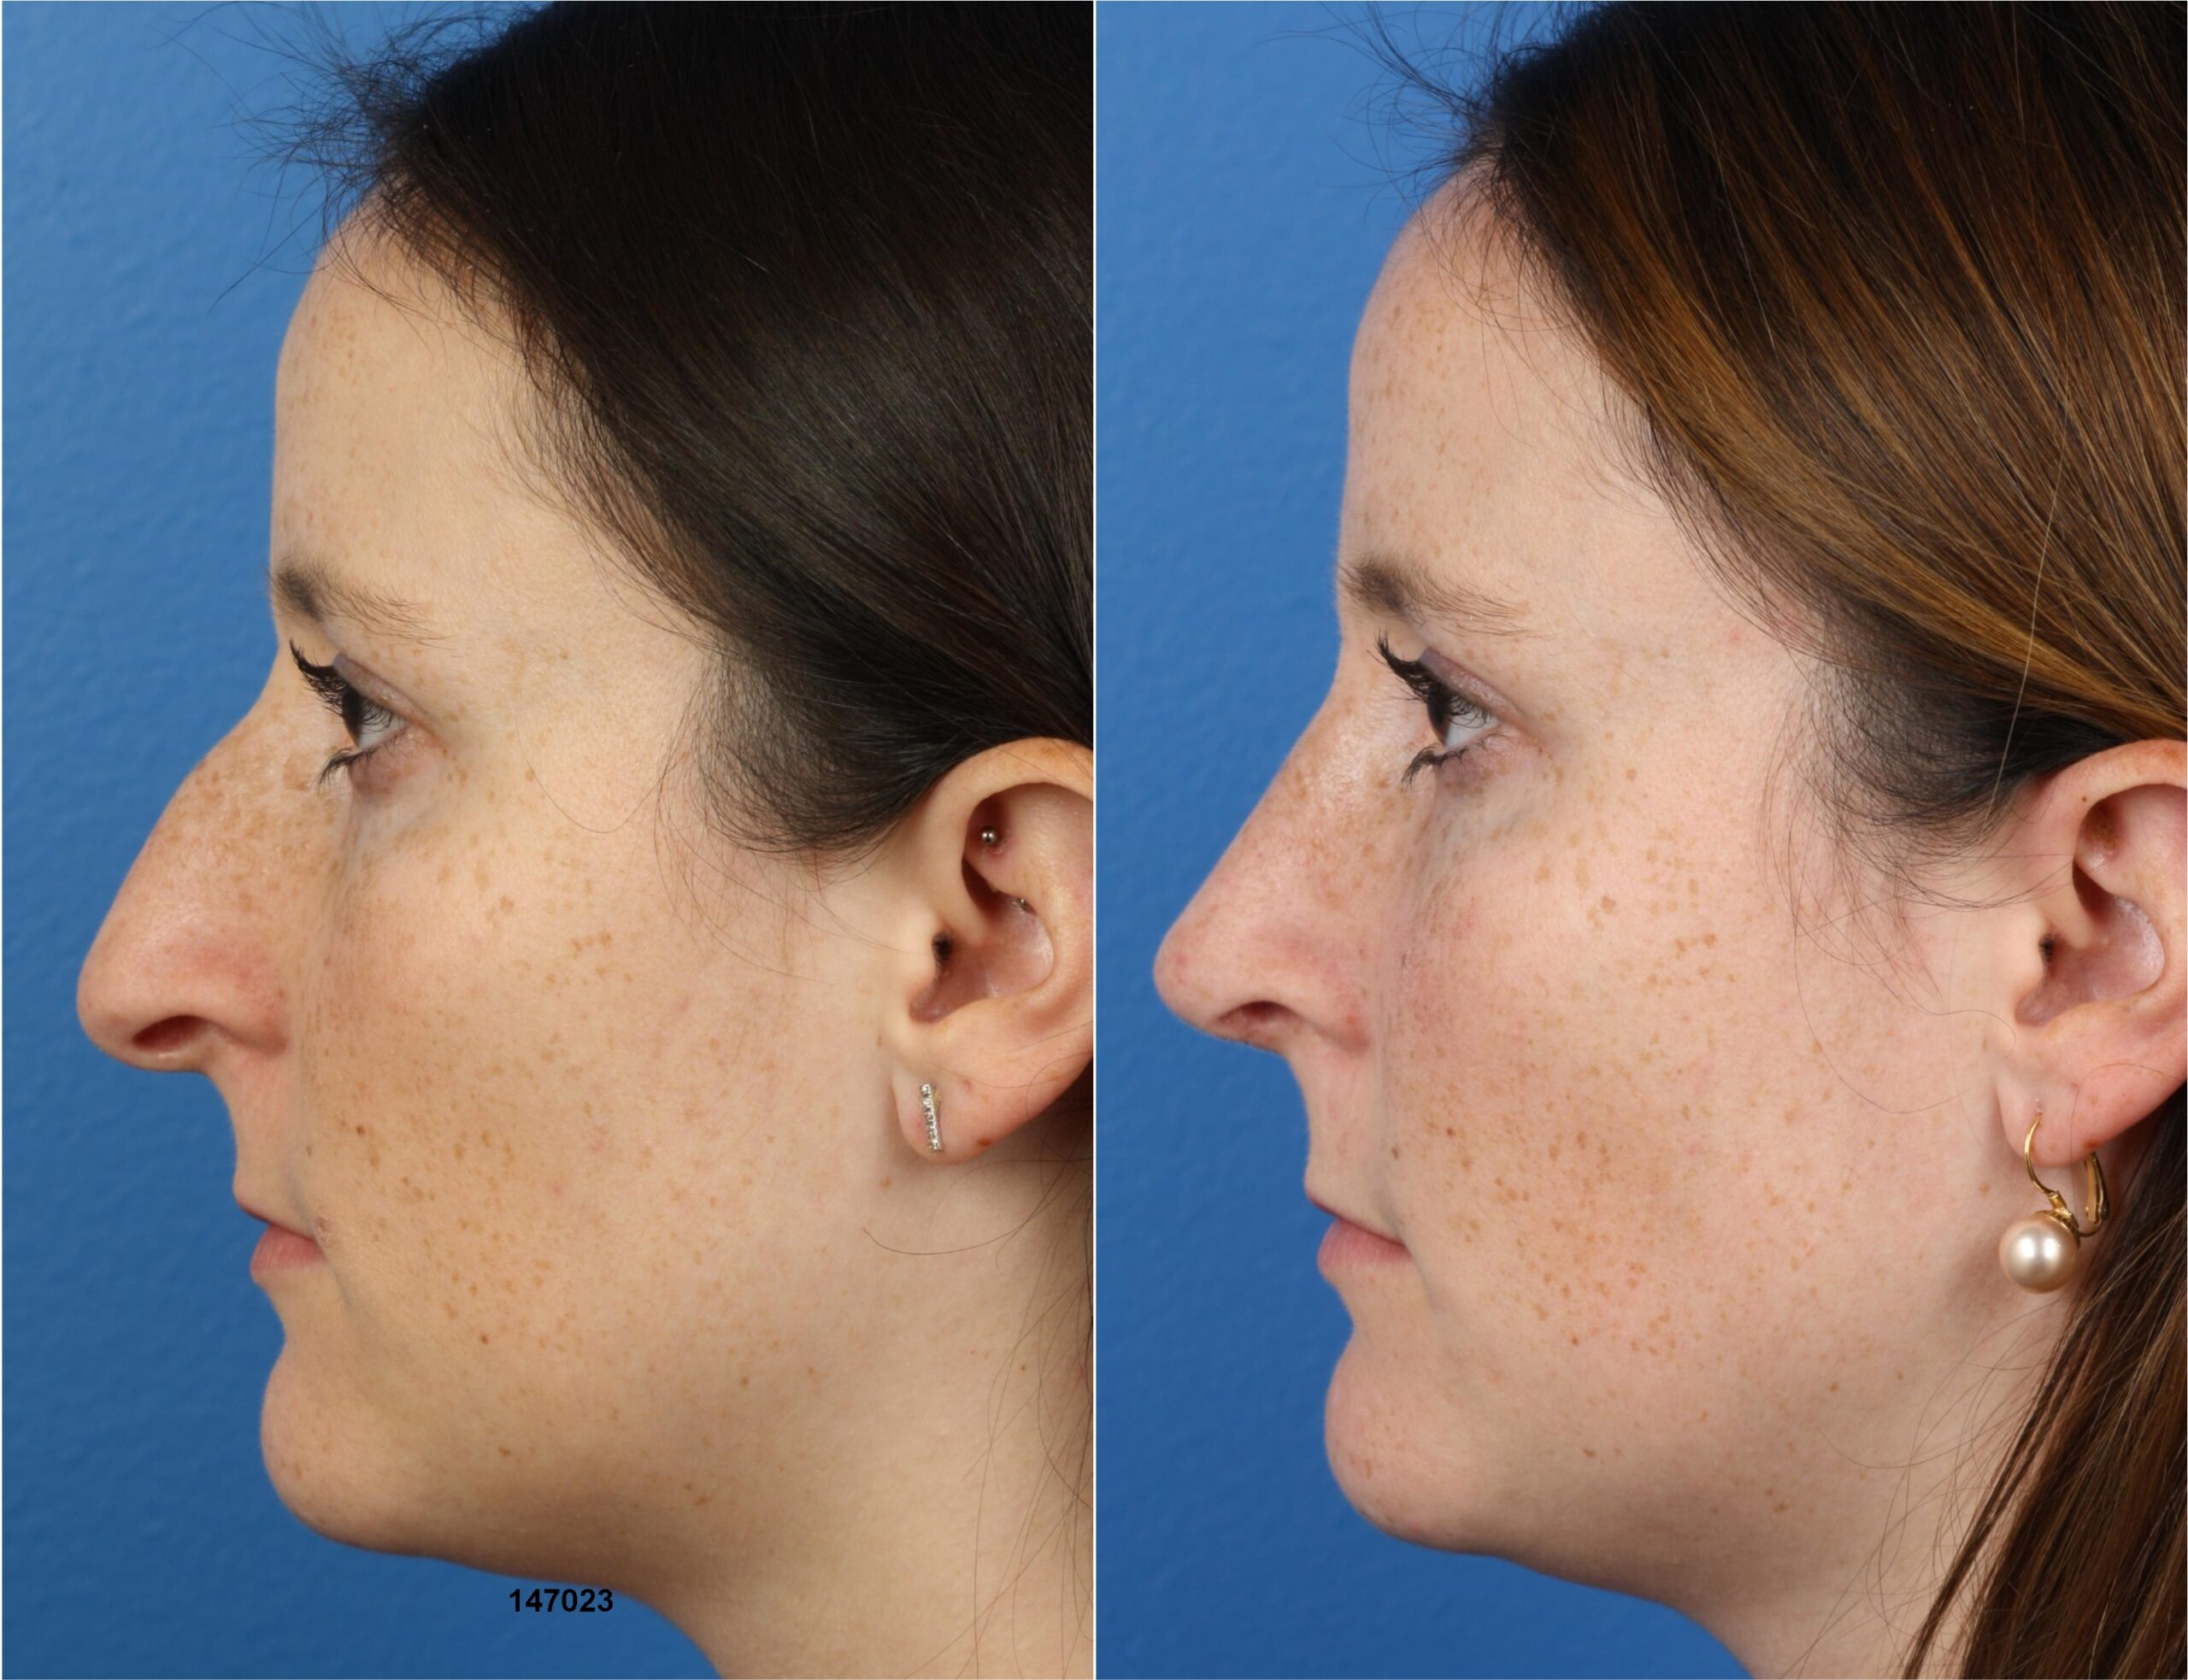 Before and after of a female rhinoplasty